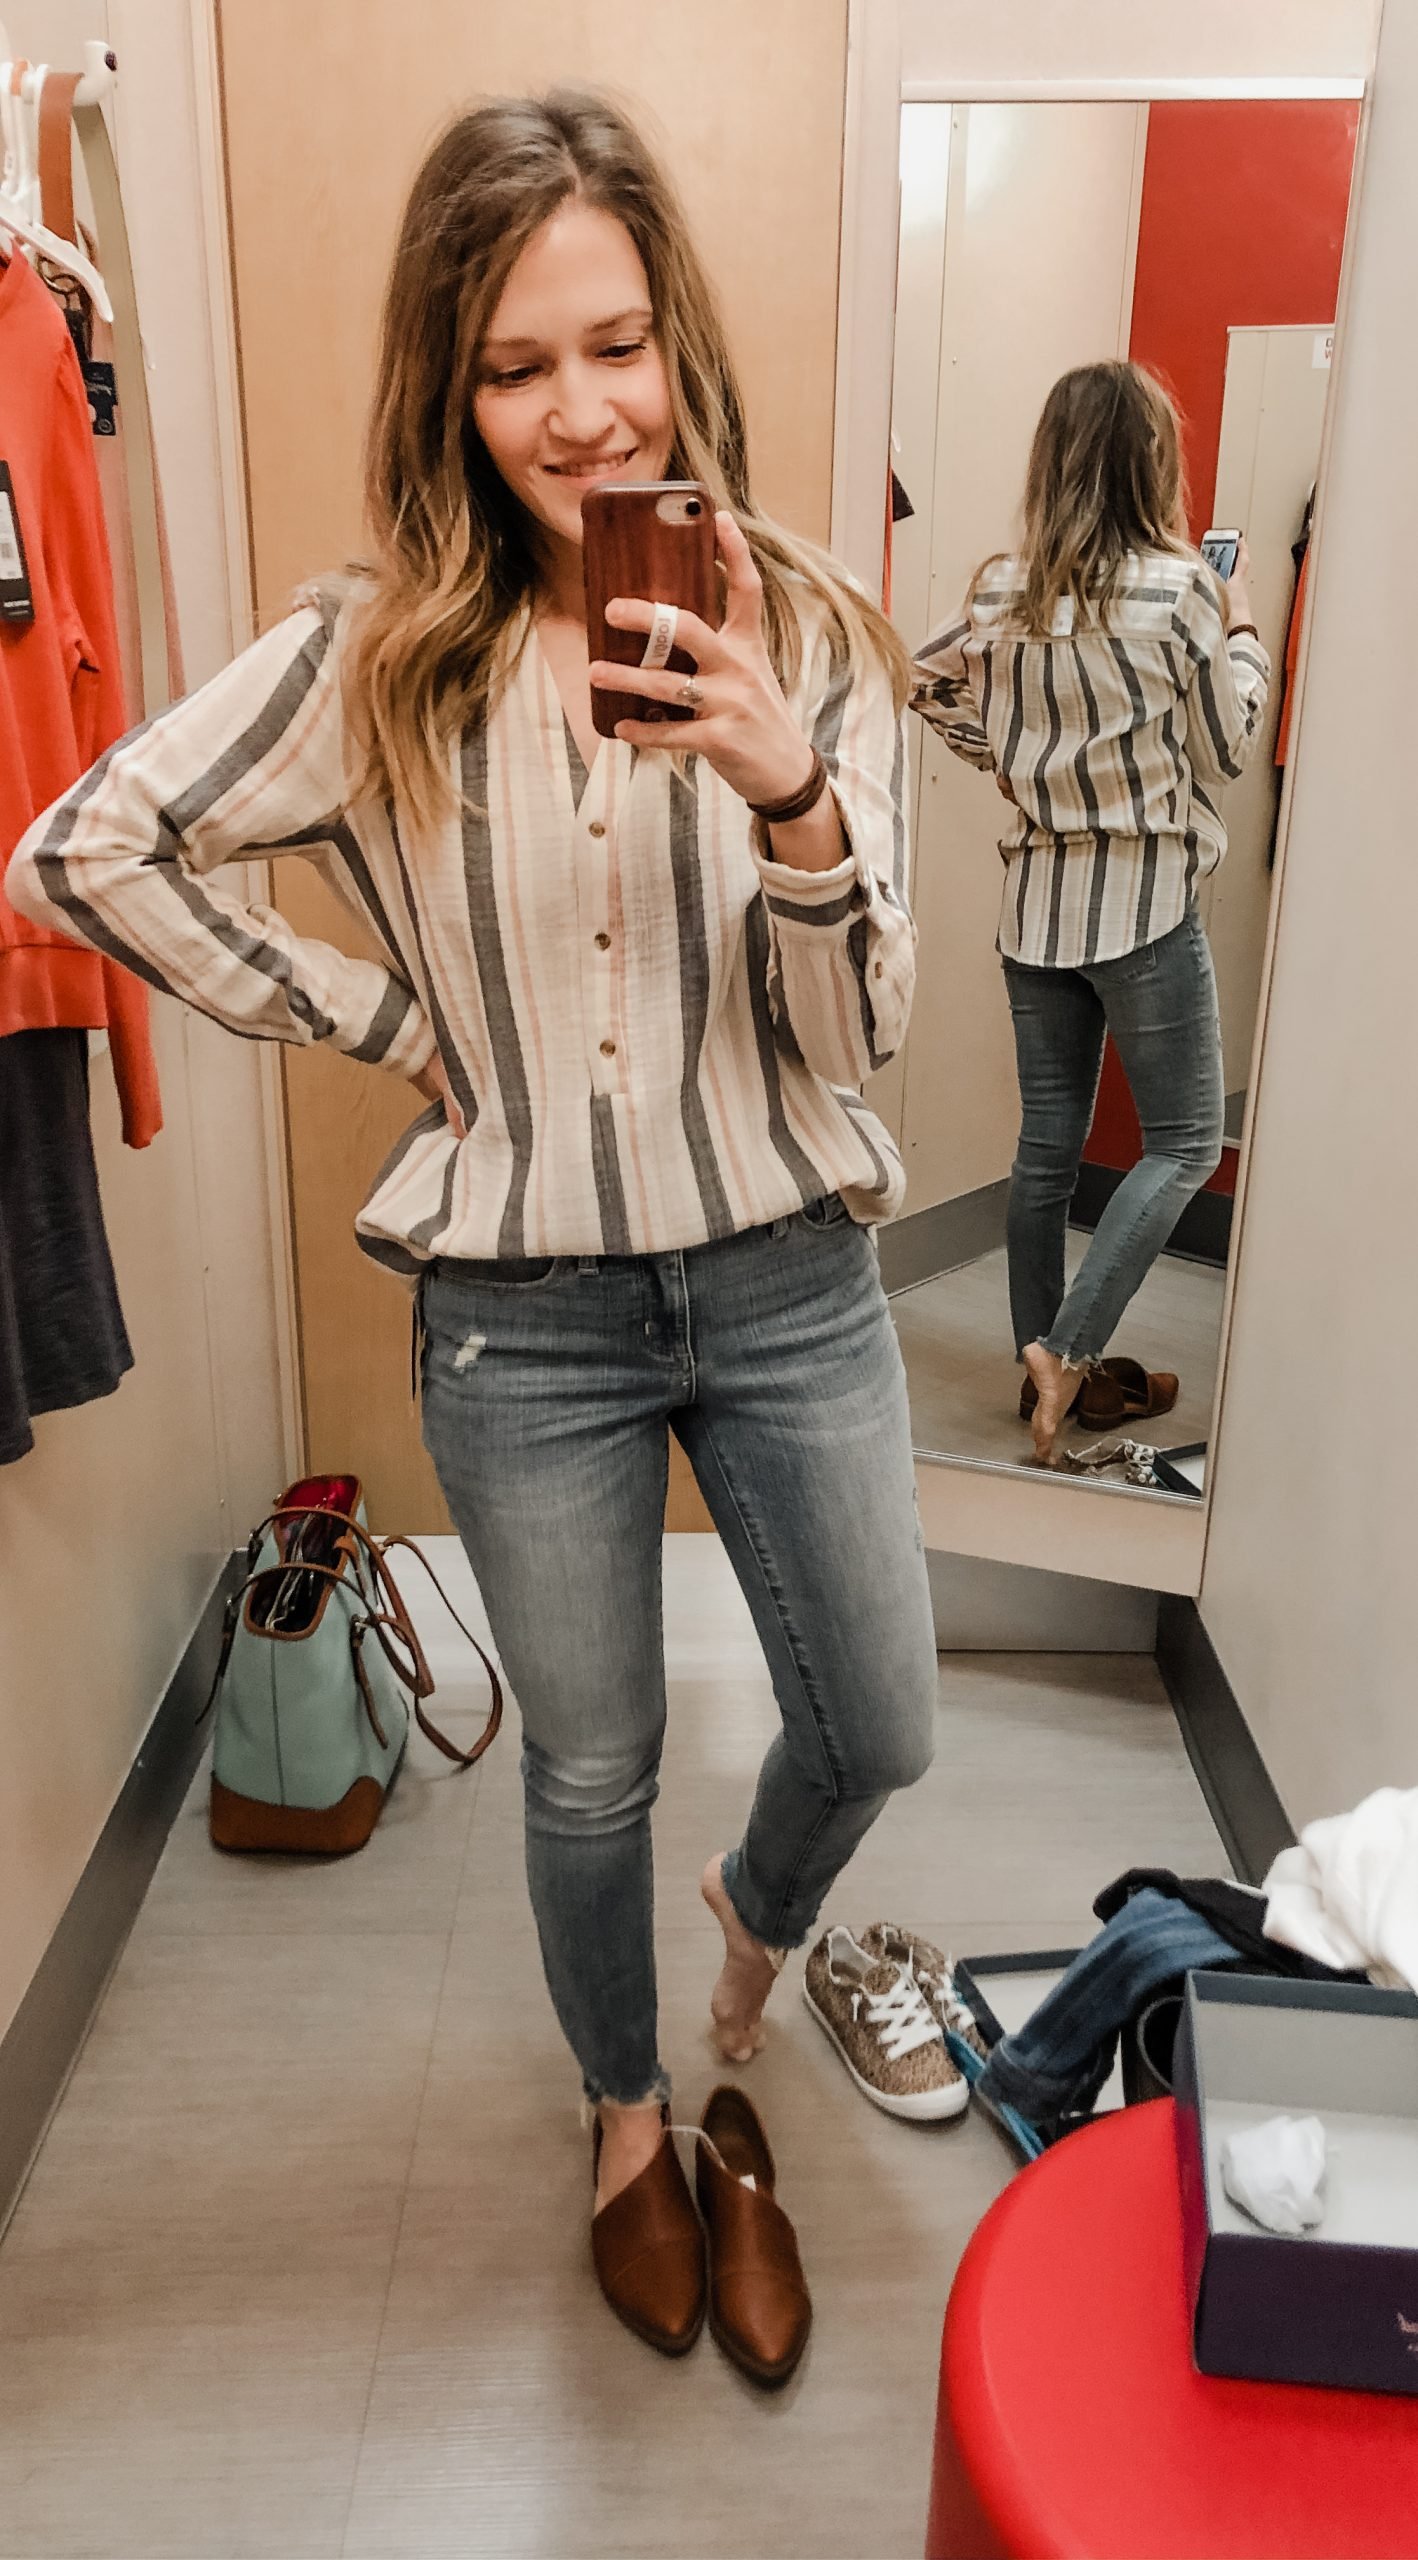 daffodil SEID - Target outfits